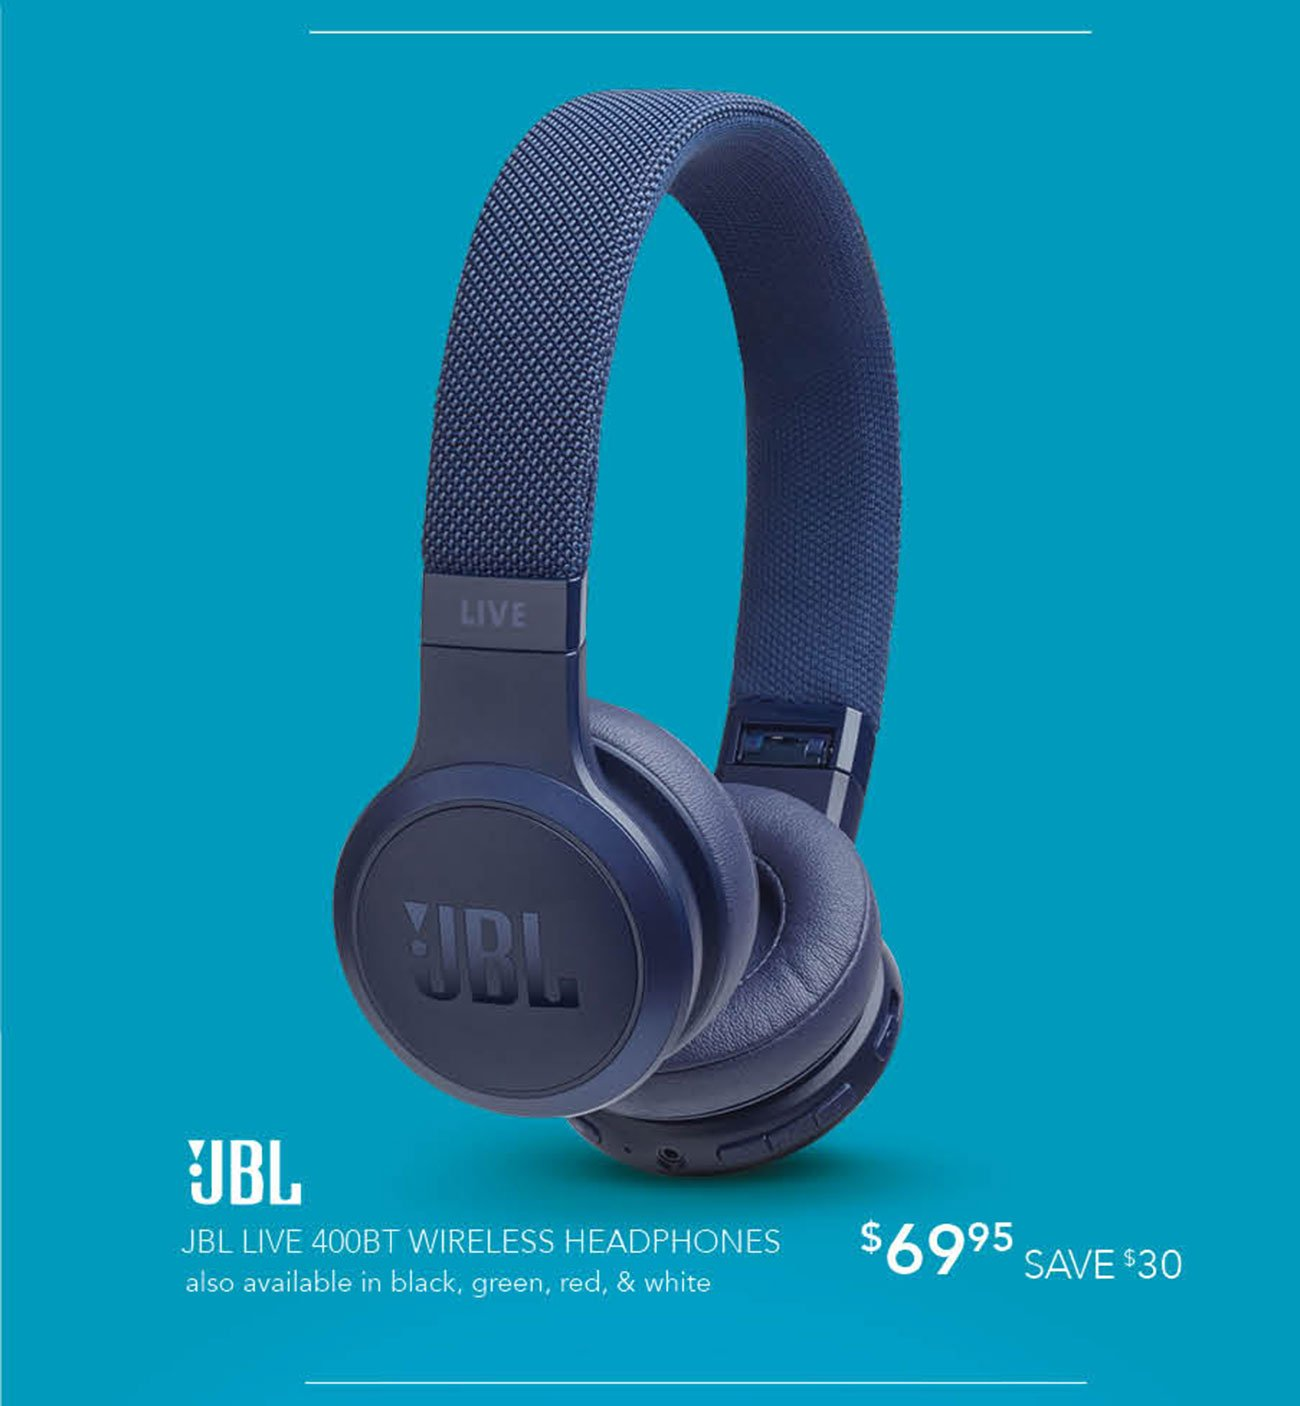 Jbl-headphones